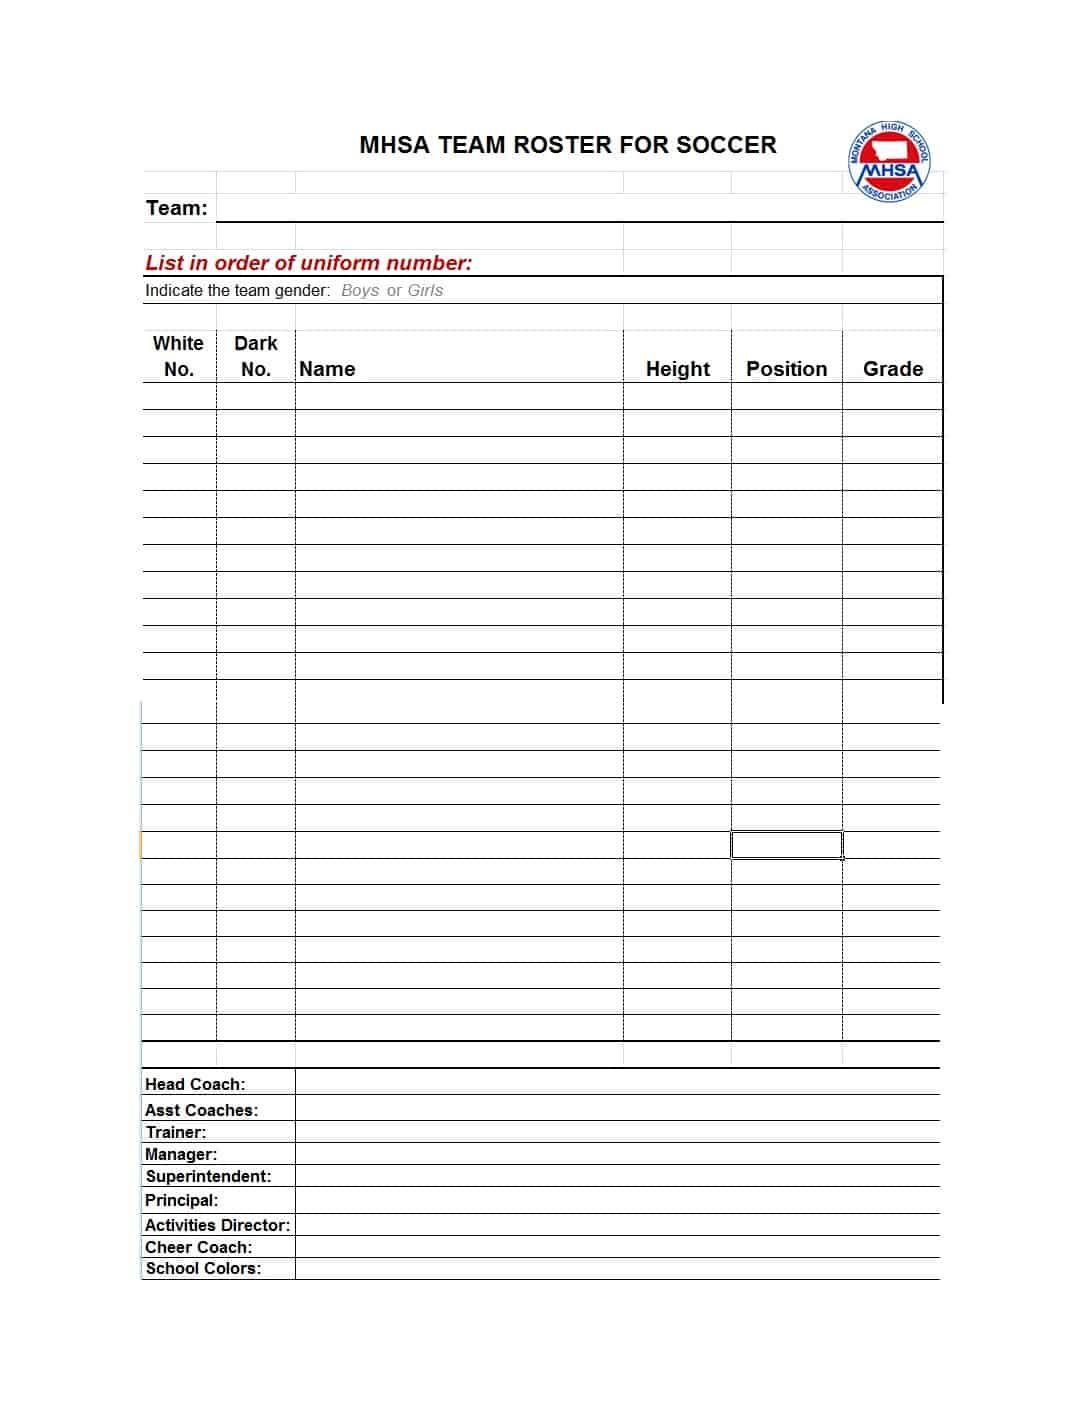 49 Printable Soccer Roster Templates Soccer Lineup Sheets ᐅ